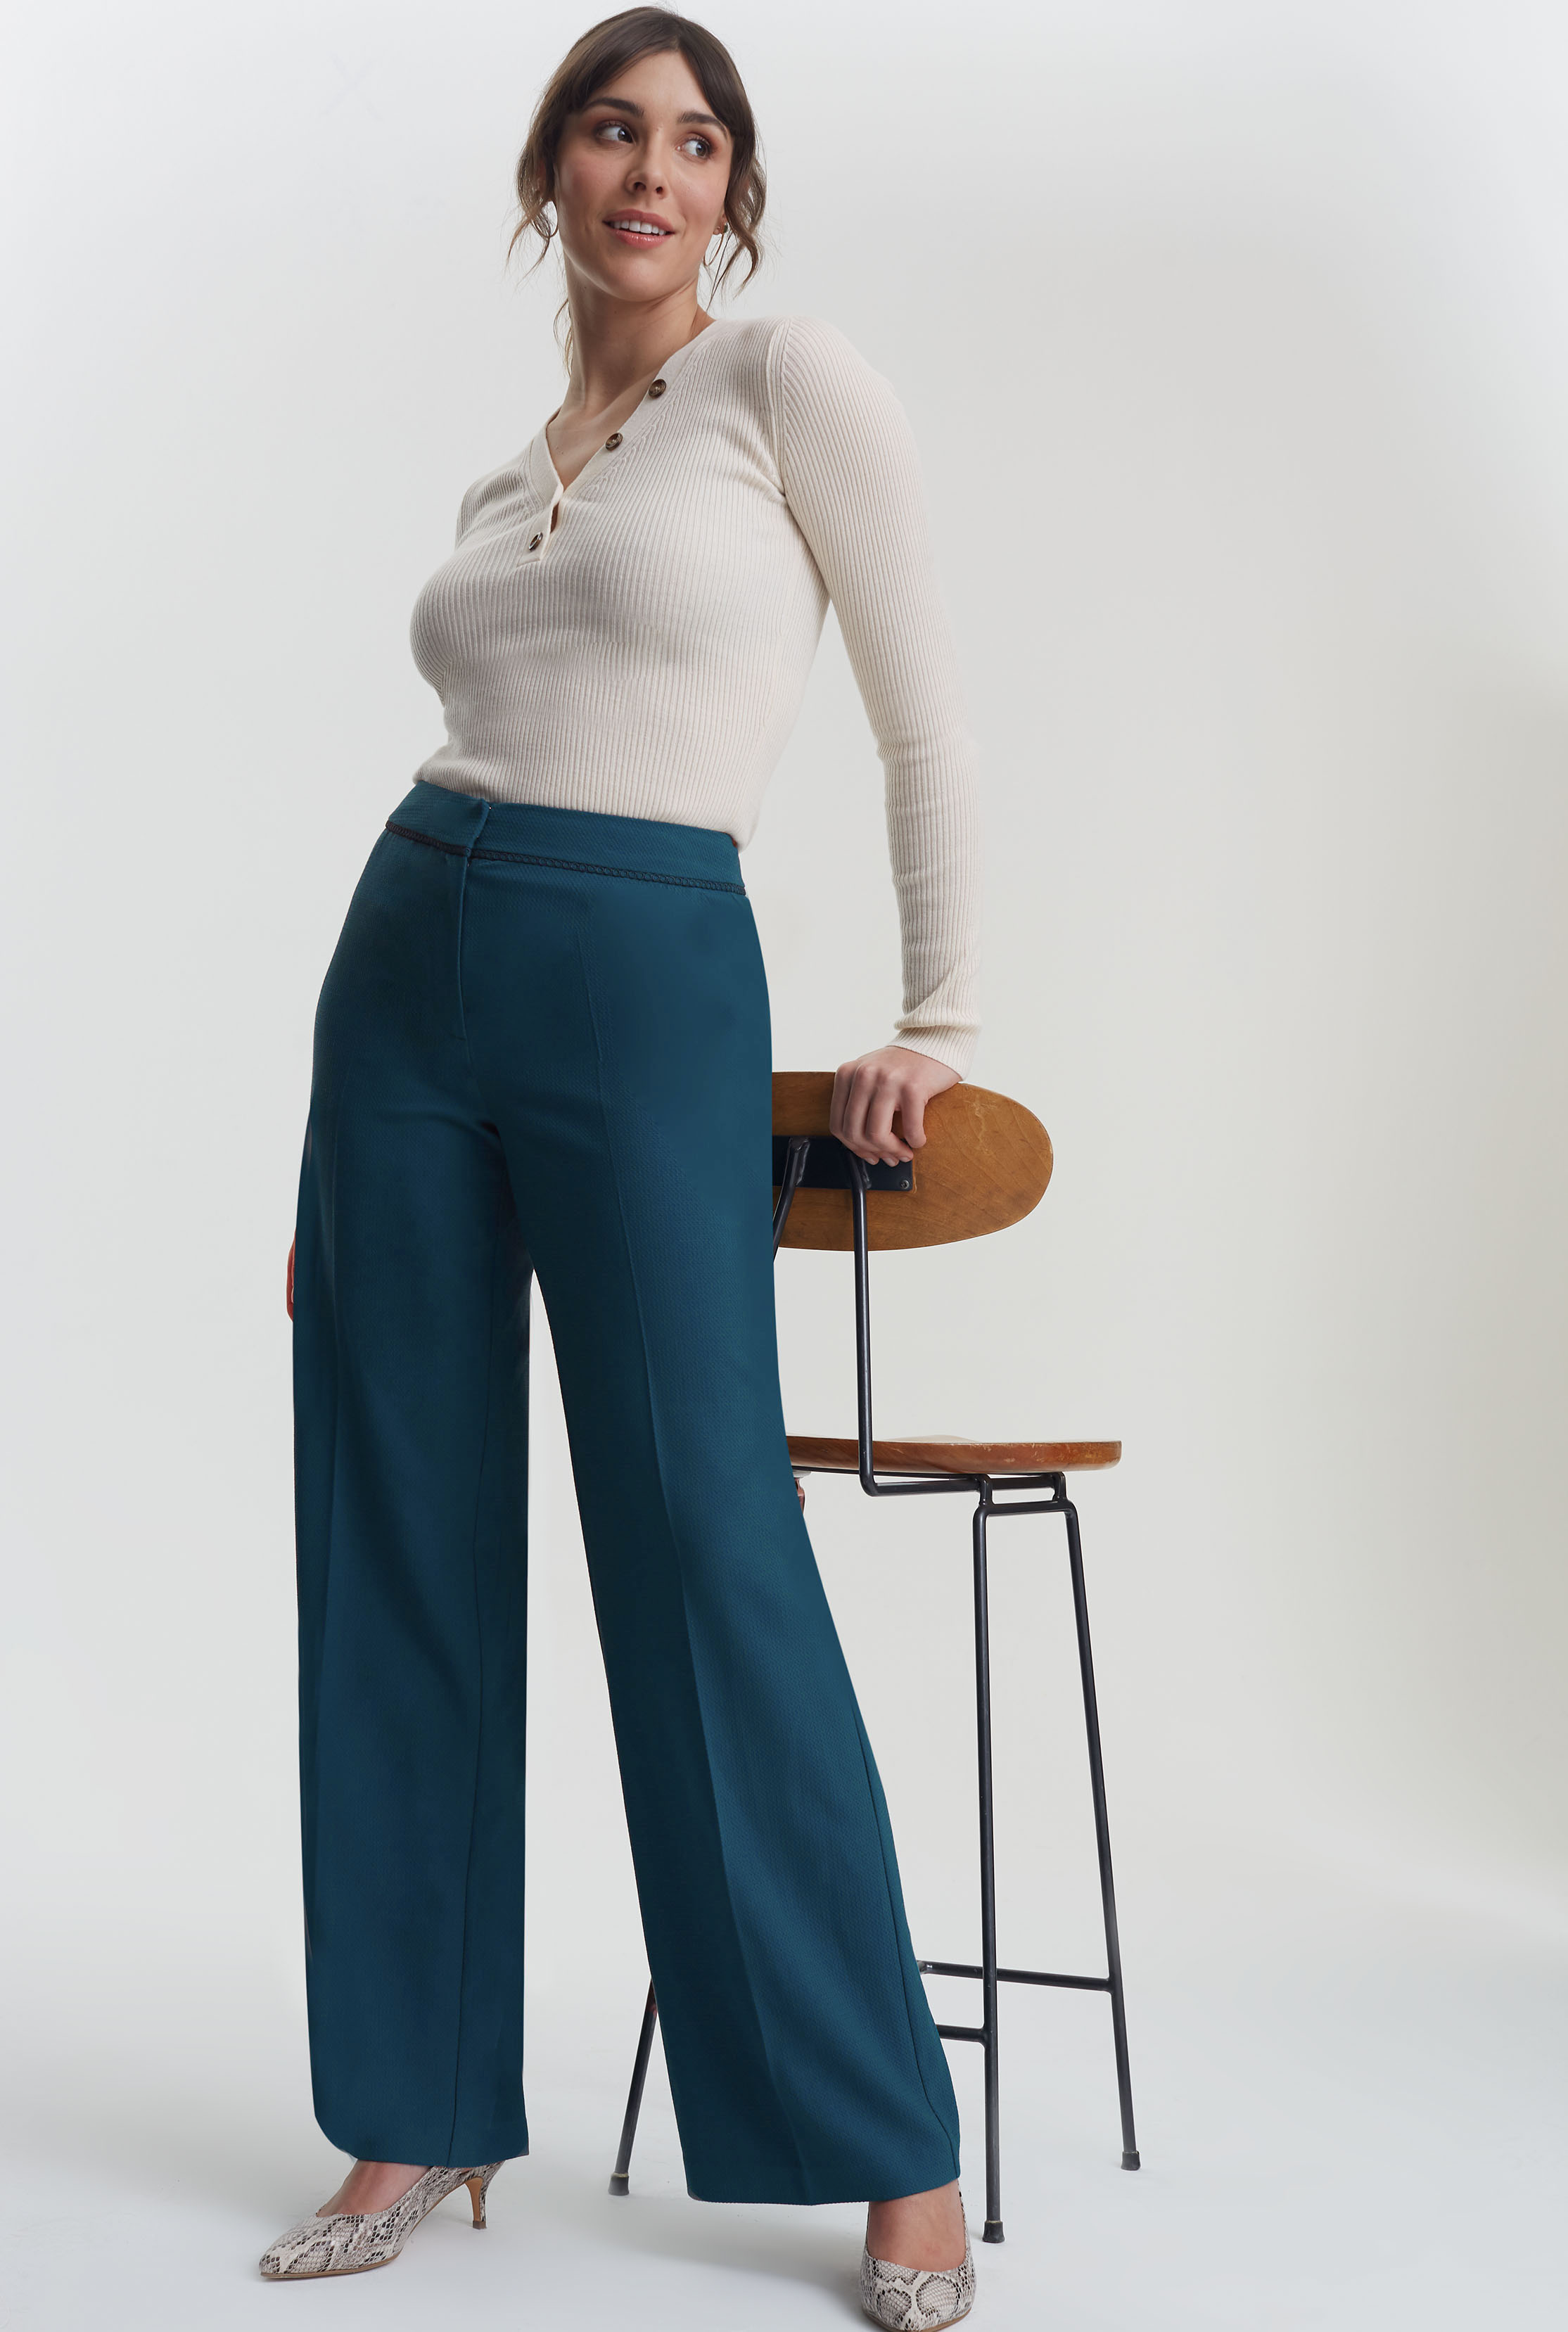 Teal Trim Textured Wide Leg Suit Trouser